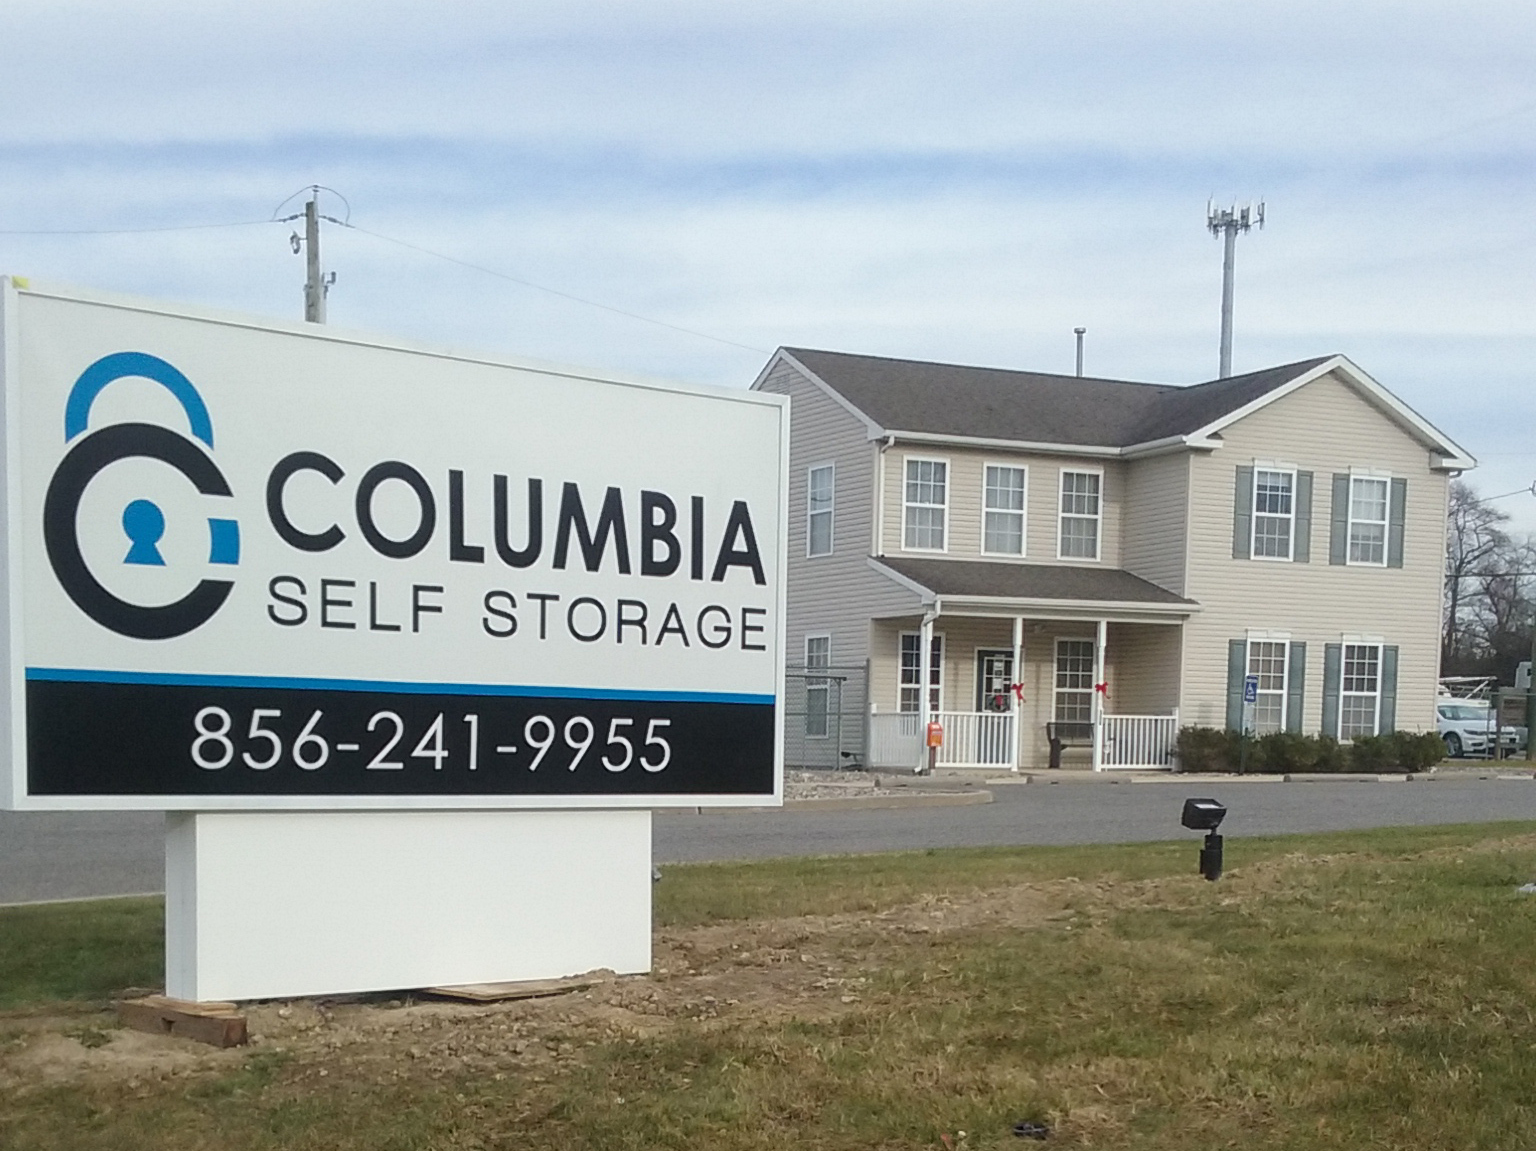 Columbia Self Storage - Mullica Hill